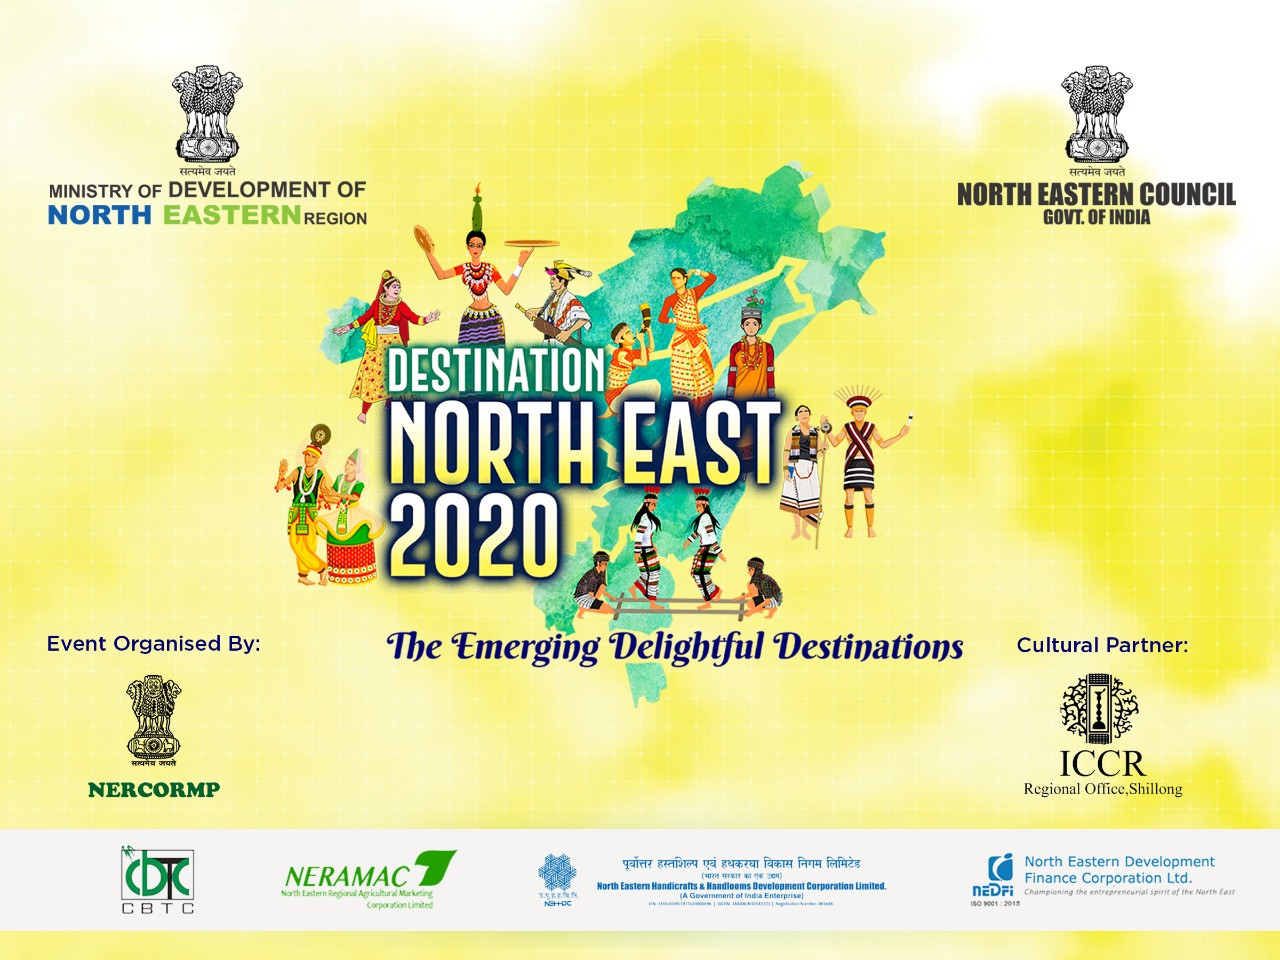 Destination North East 2020